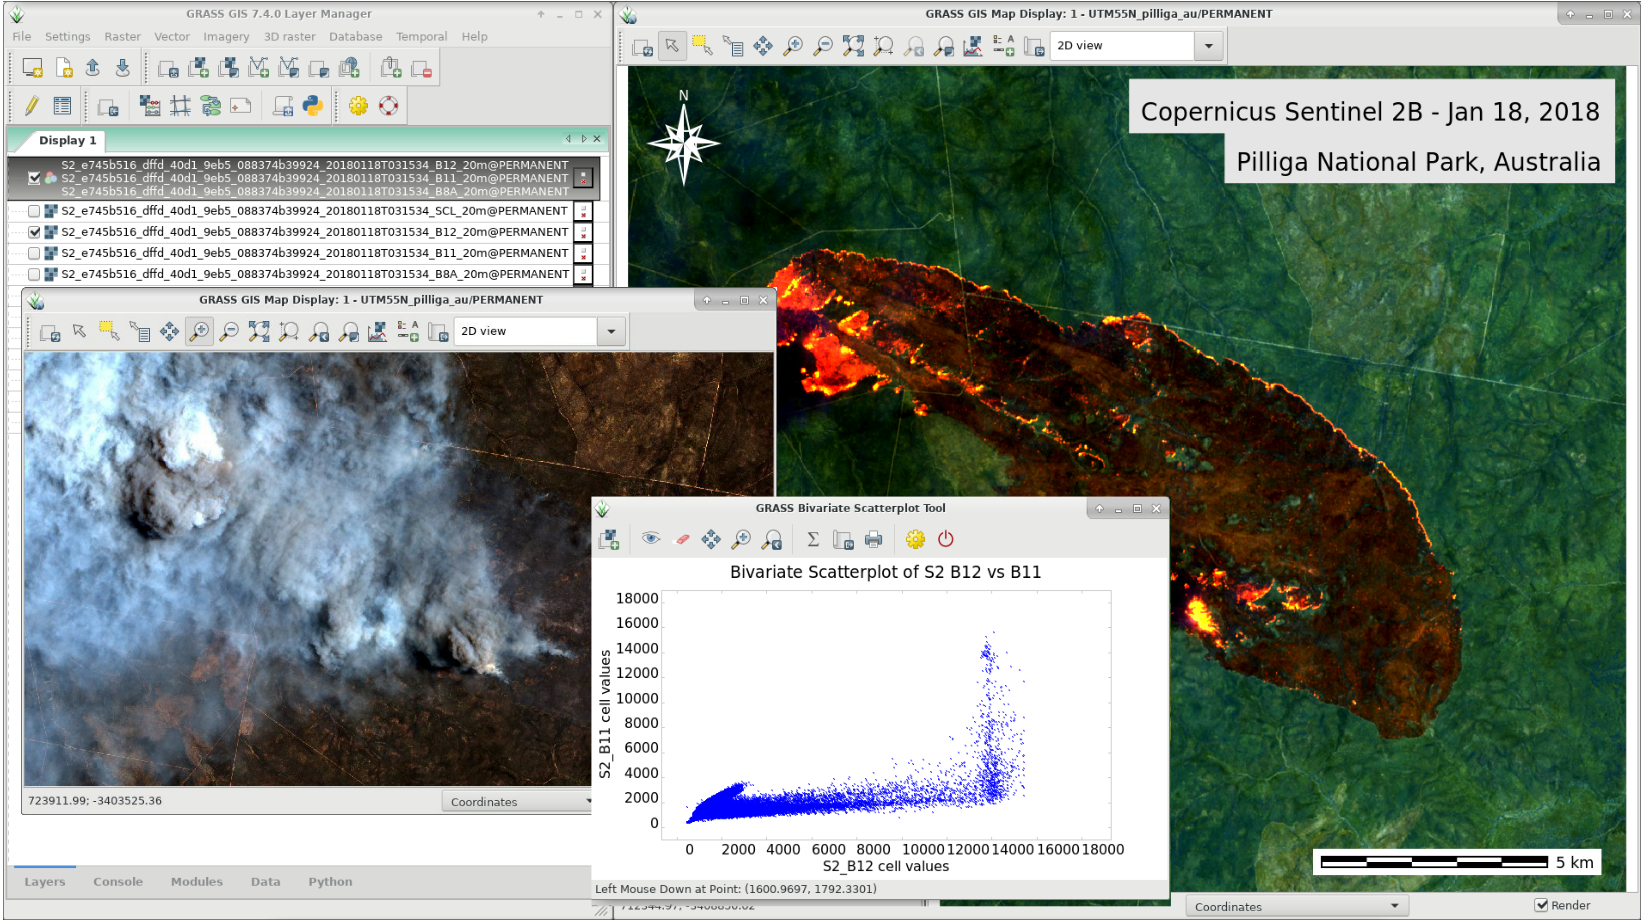 GRASS GIS 7.4.0: Wildfire in Australia, seen by Sentinel-2B